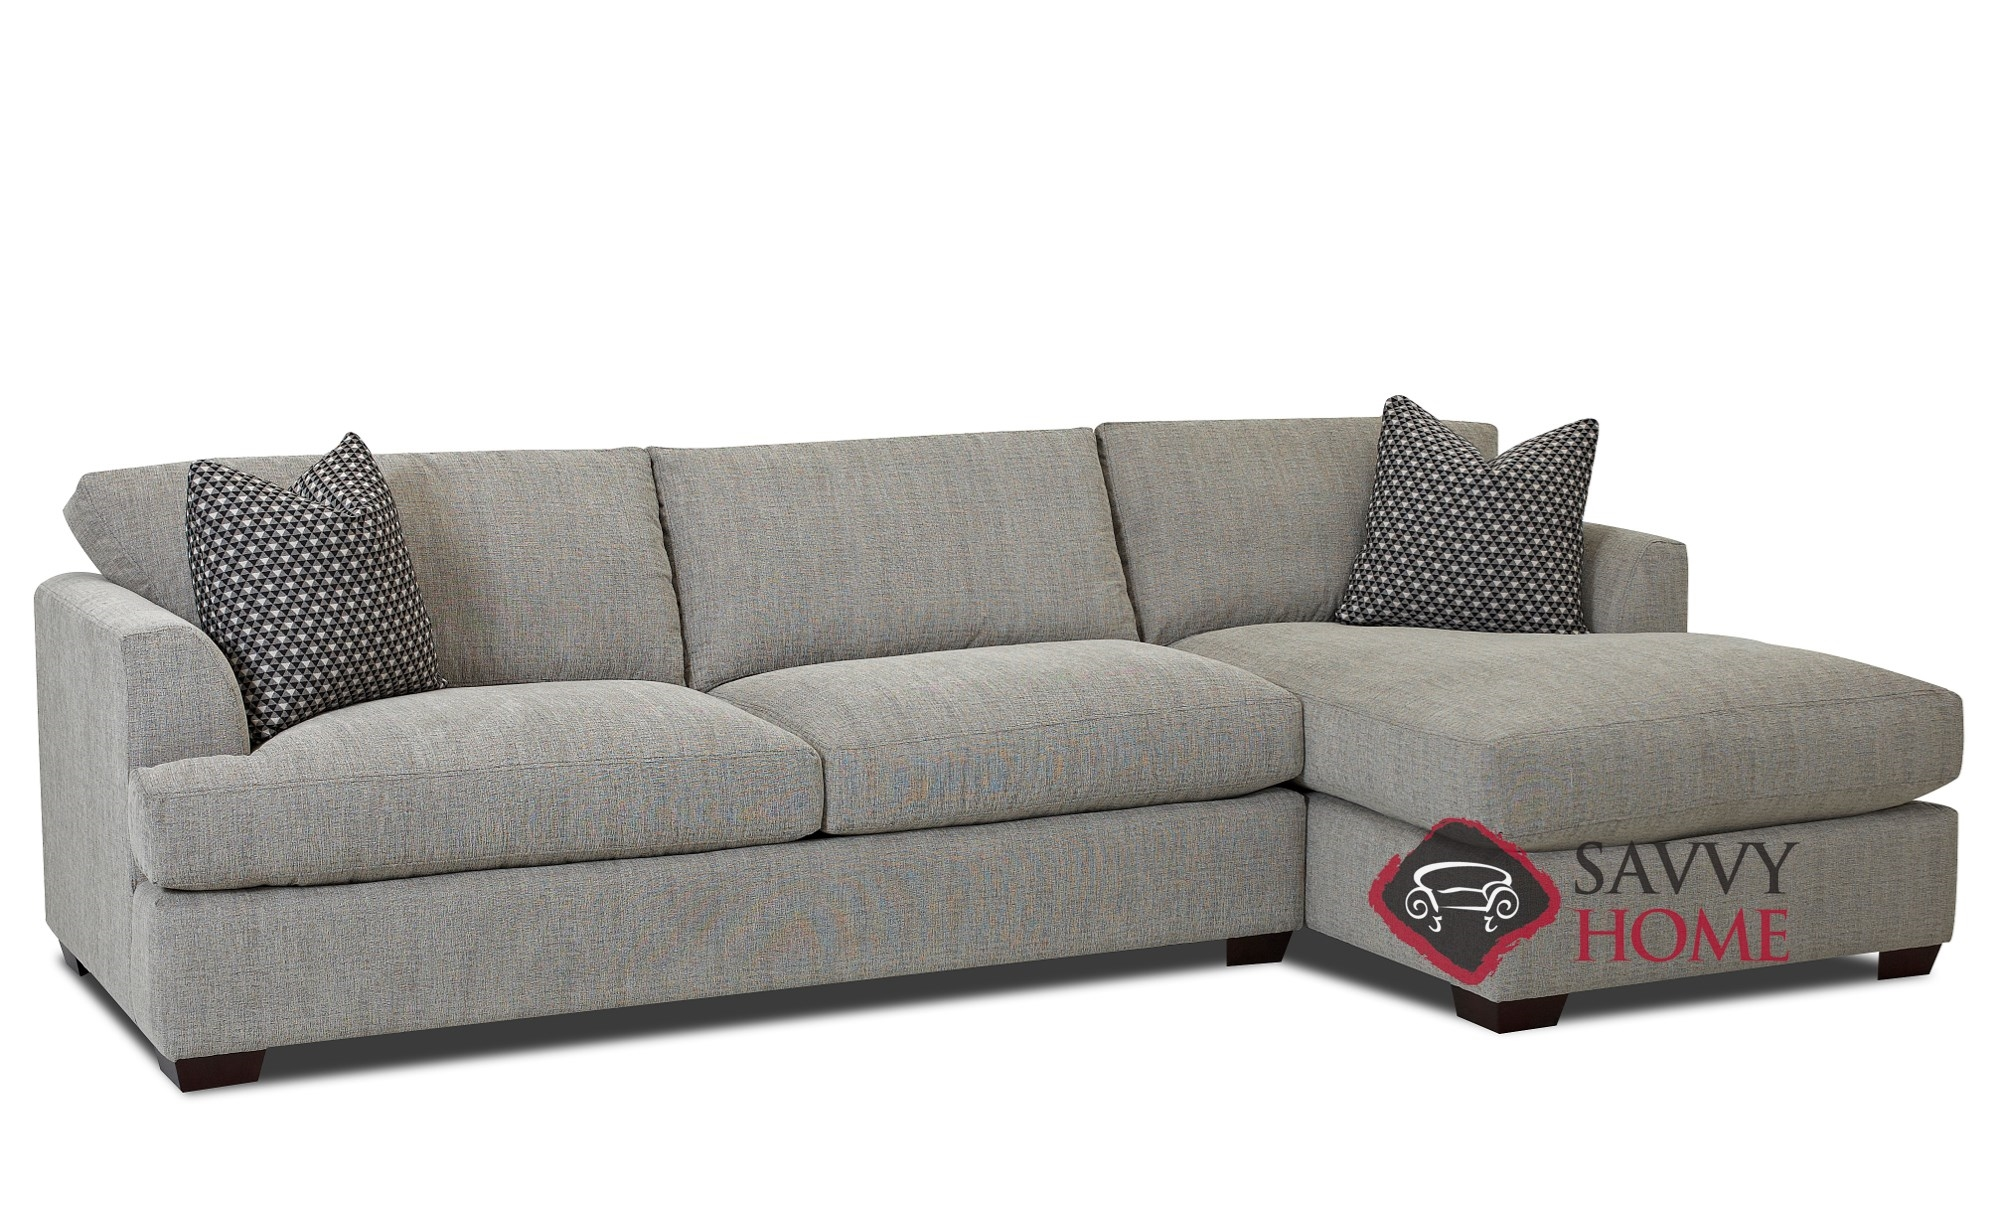 Berkeley Chaise Sectional Sofa by Savvy with Down-Blend Cushions